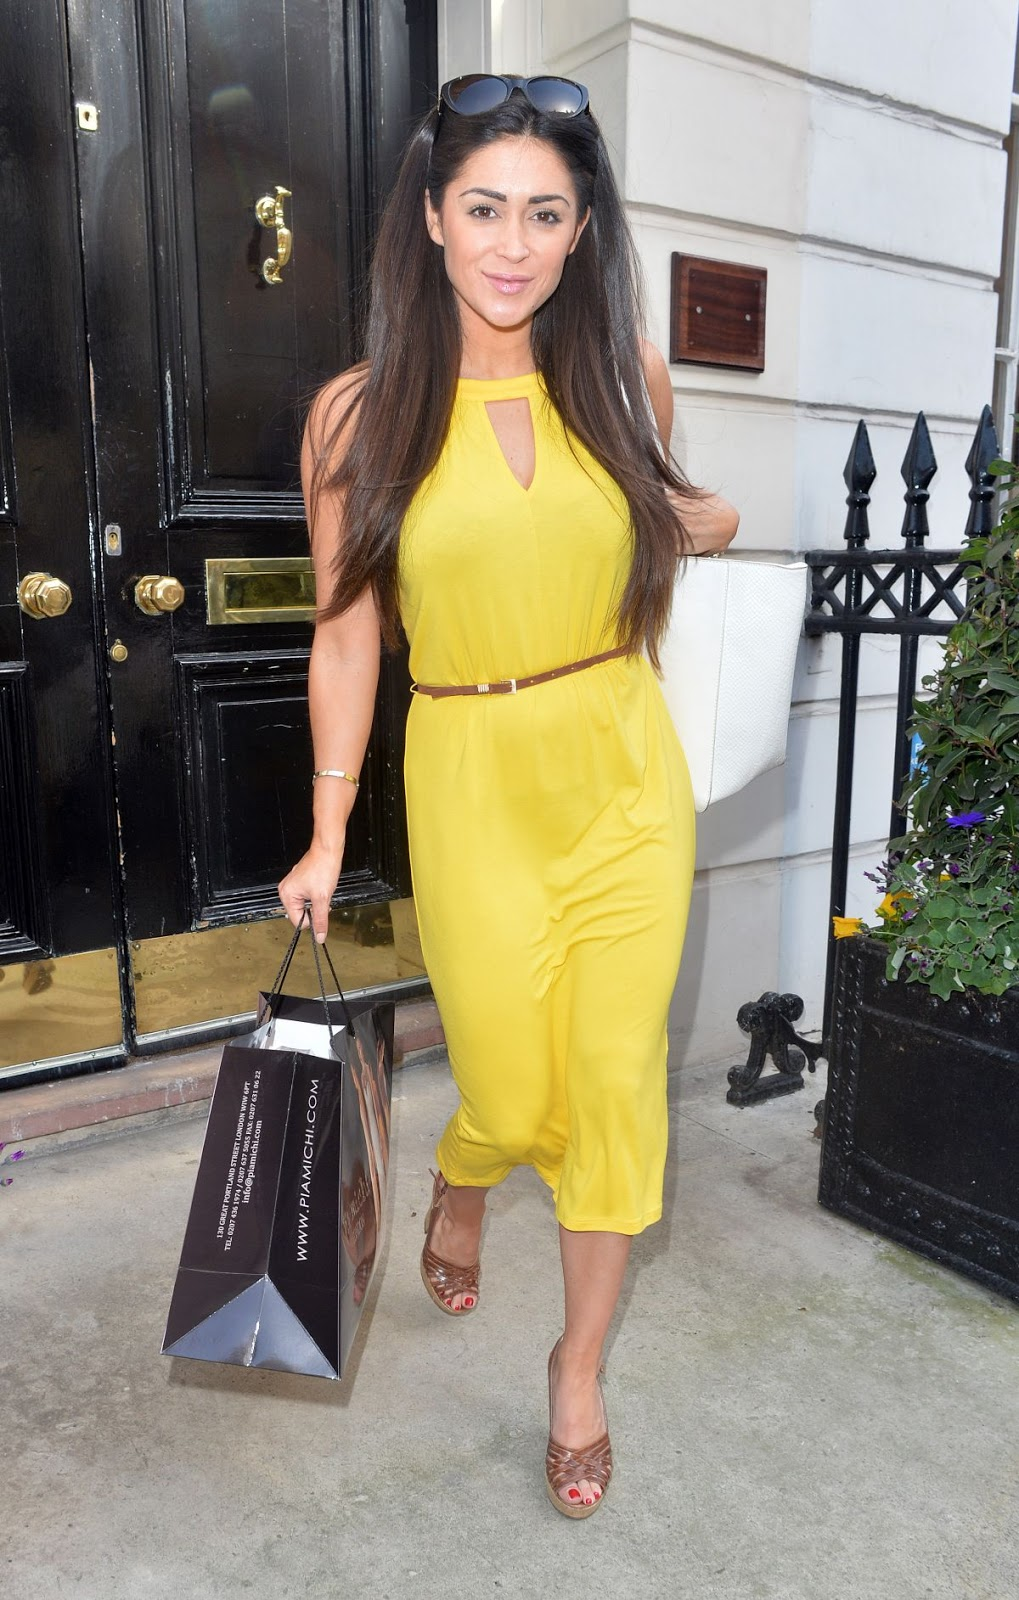 HQ Photos of Casey Batchelor in Yellow dress at Cosmedocs in London